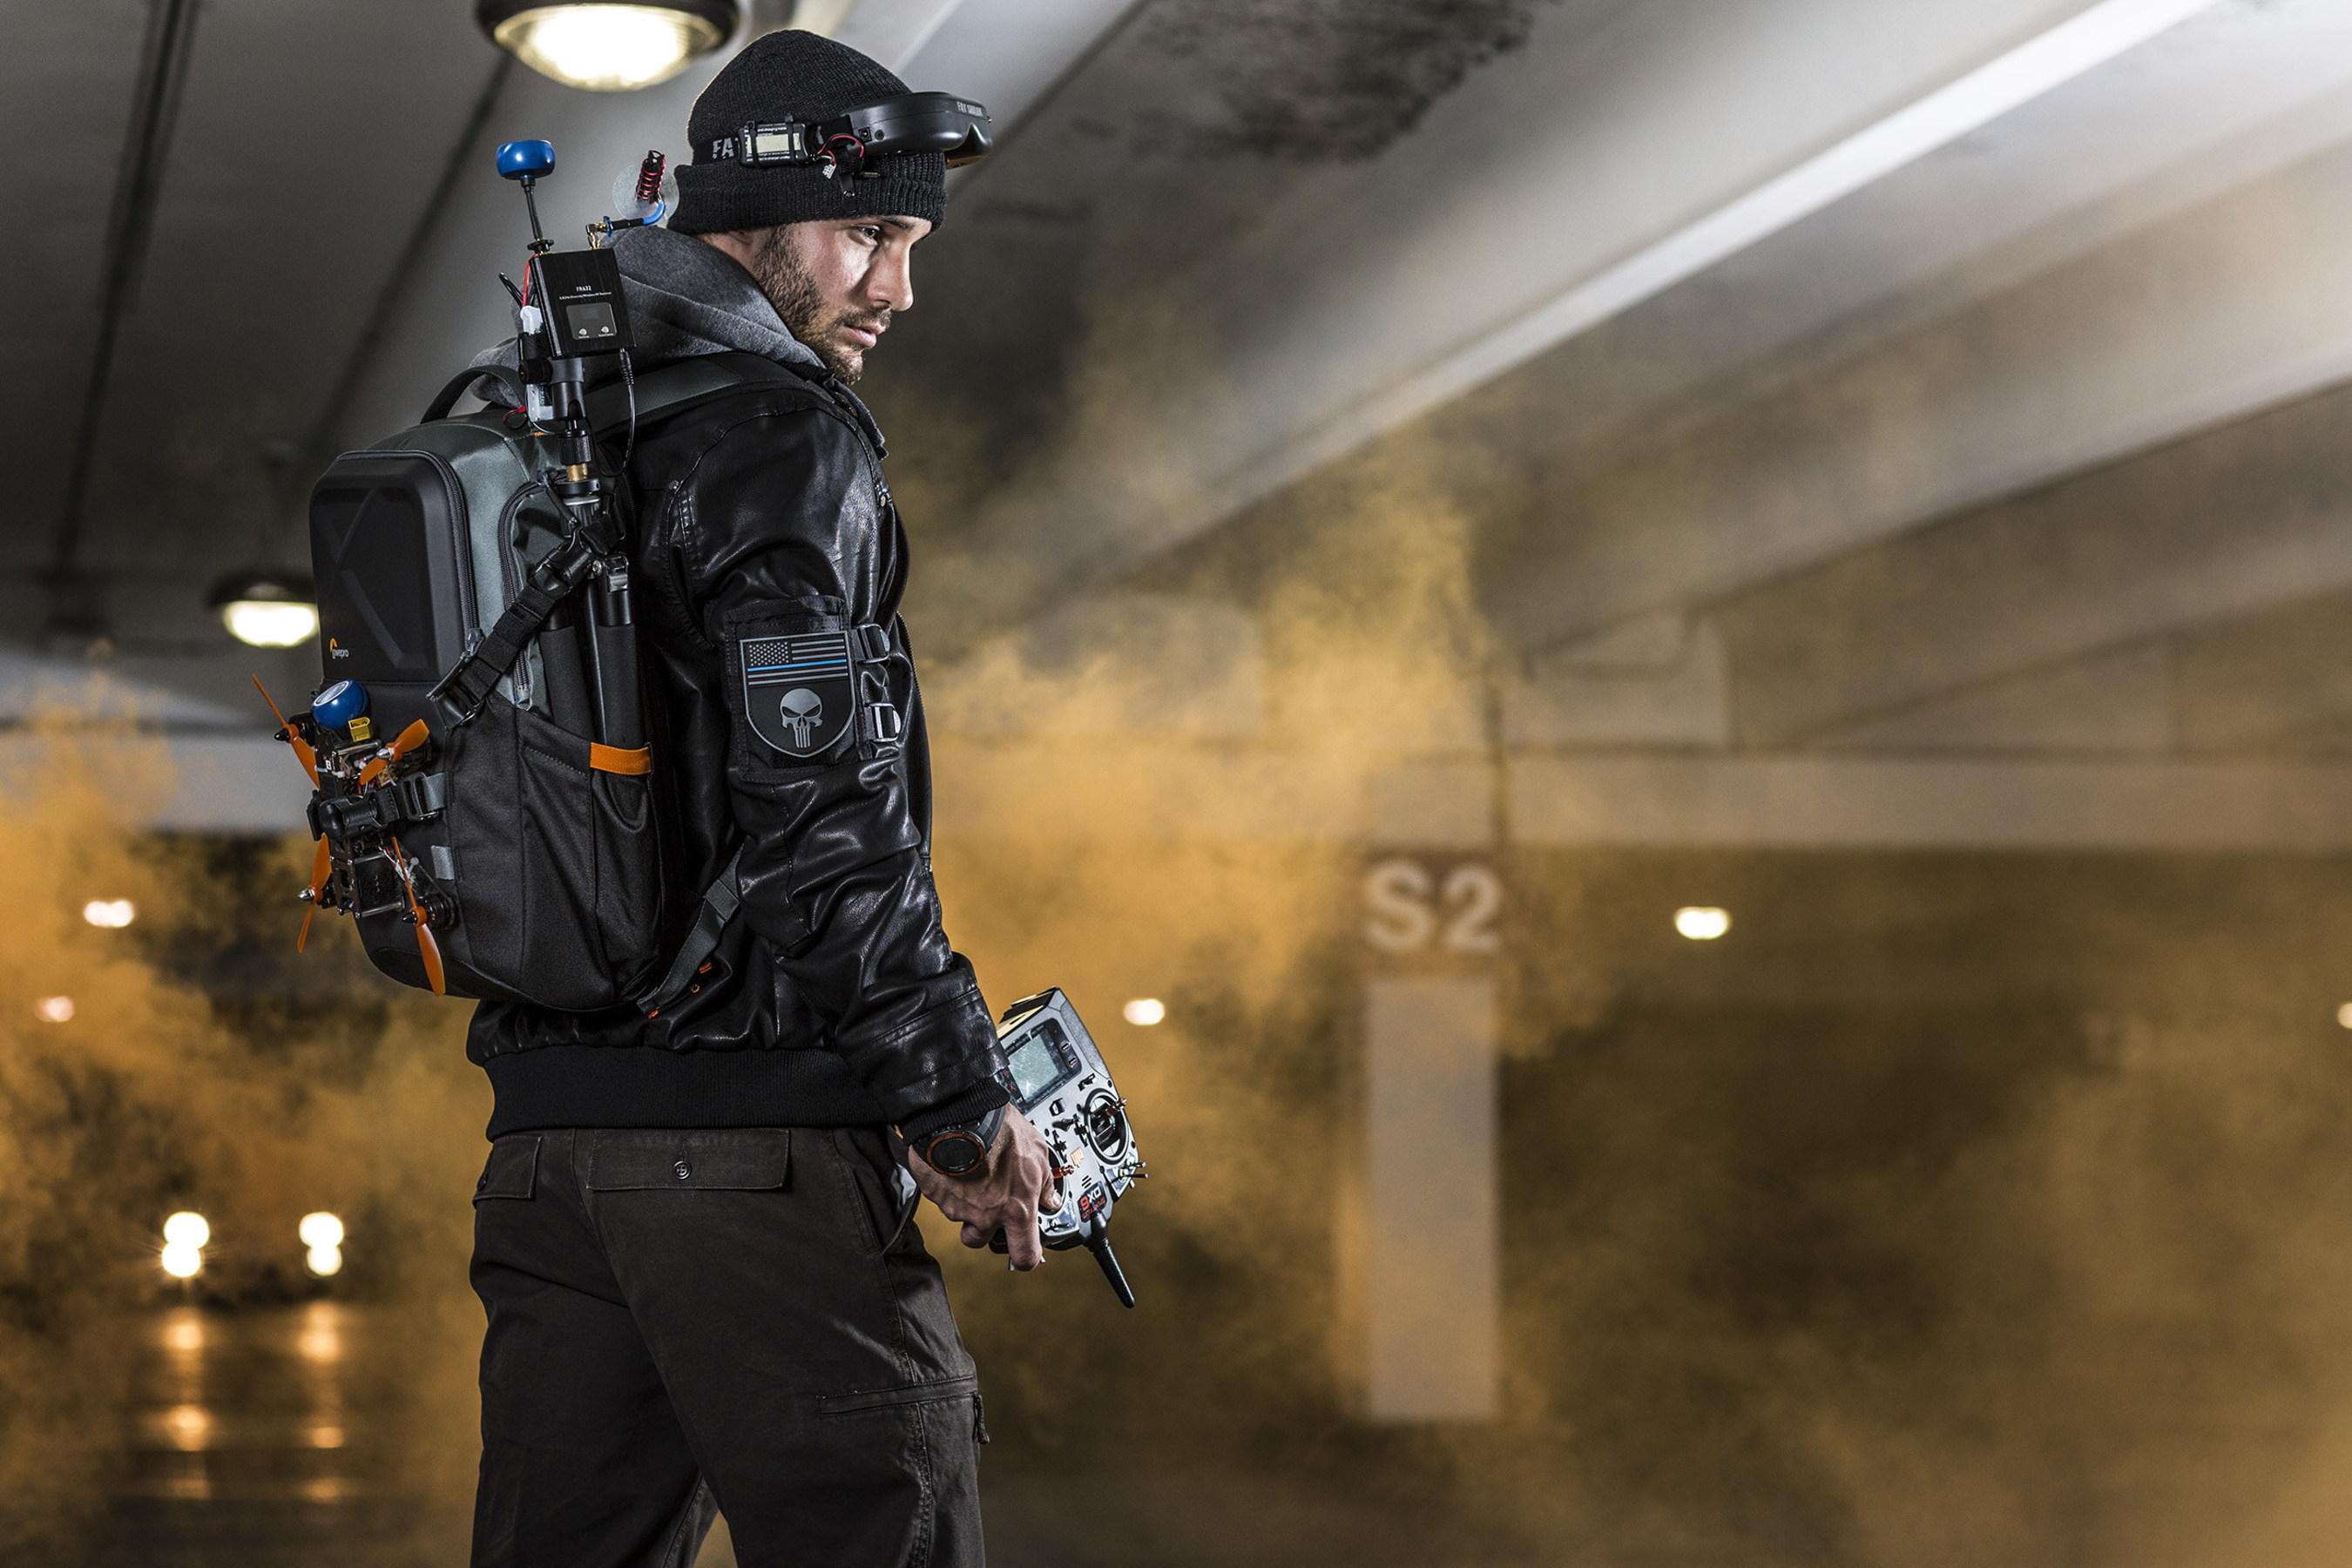 Lowepro's new QuadGuard collection, designed by and for drone racers and FPV flight enthusiasts, keeps quadcopter gear neat, organized and accessible with a promise of remarkable protection for confidence wherever your next adventure takes you.